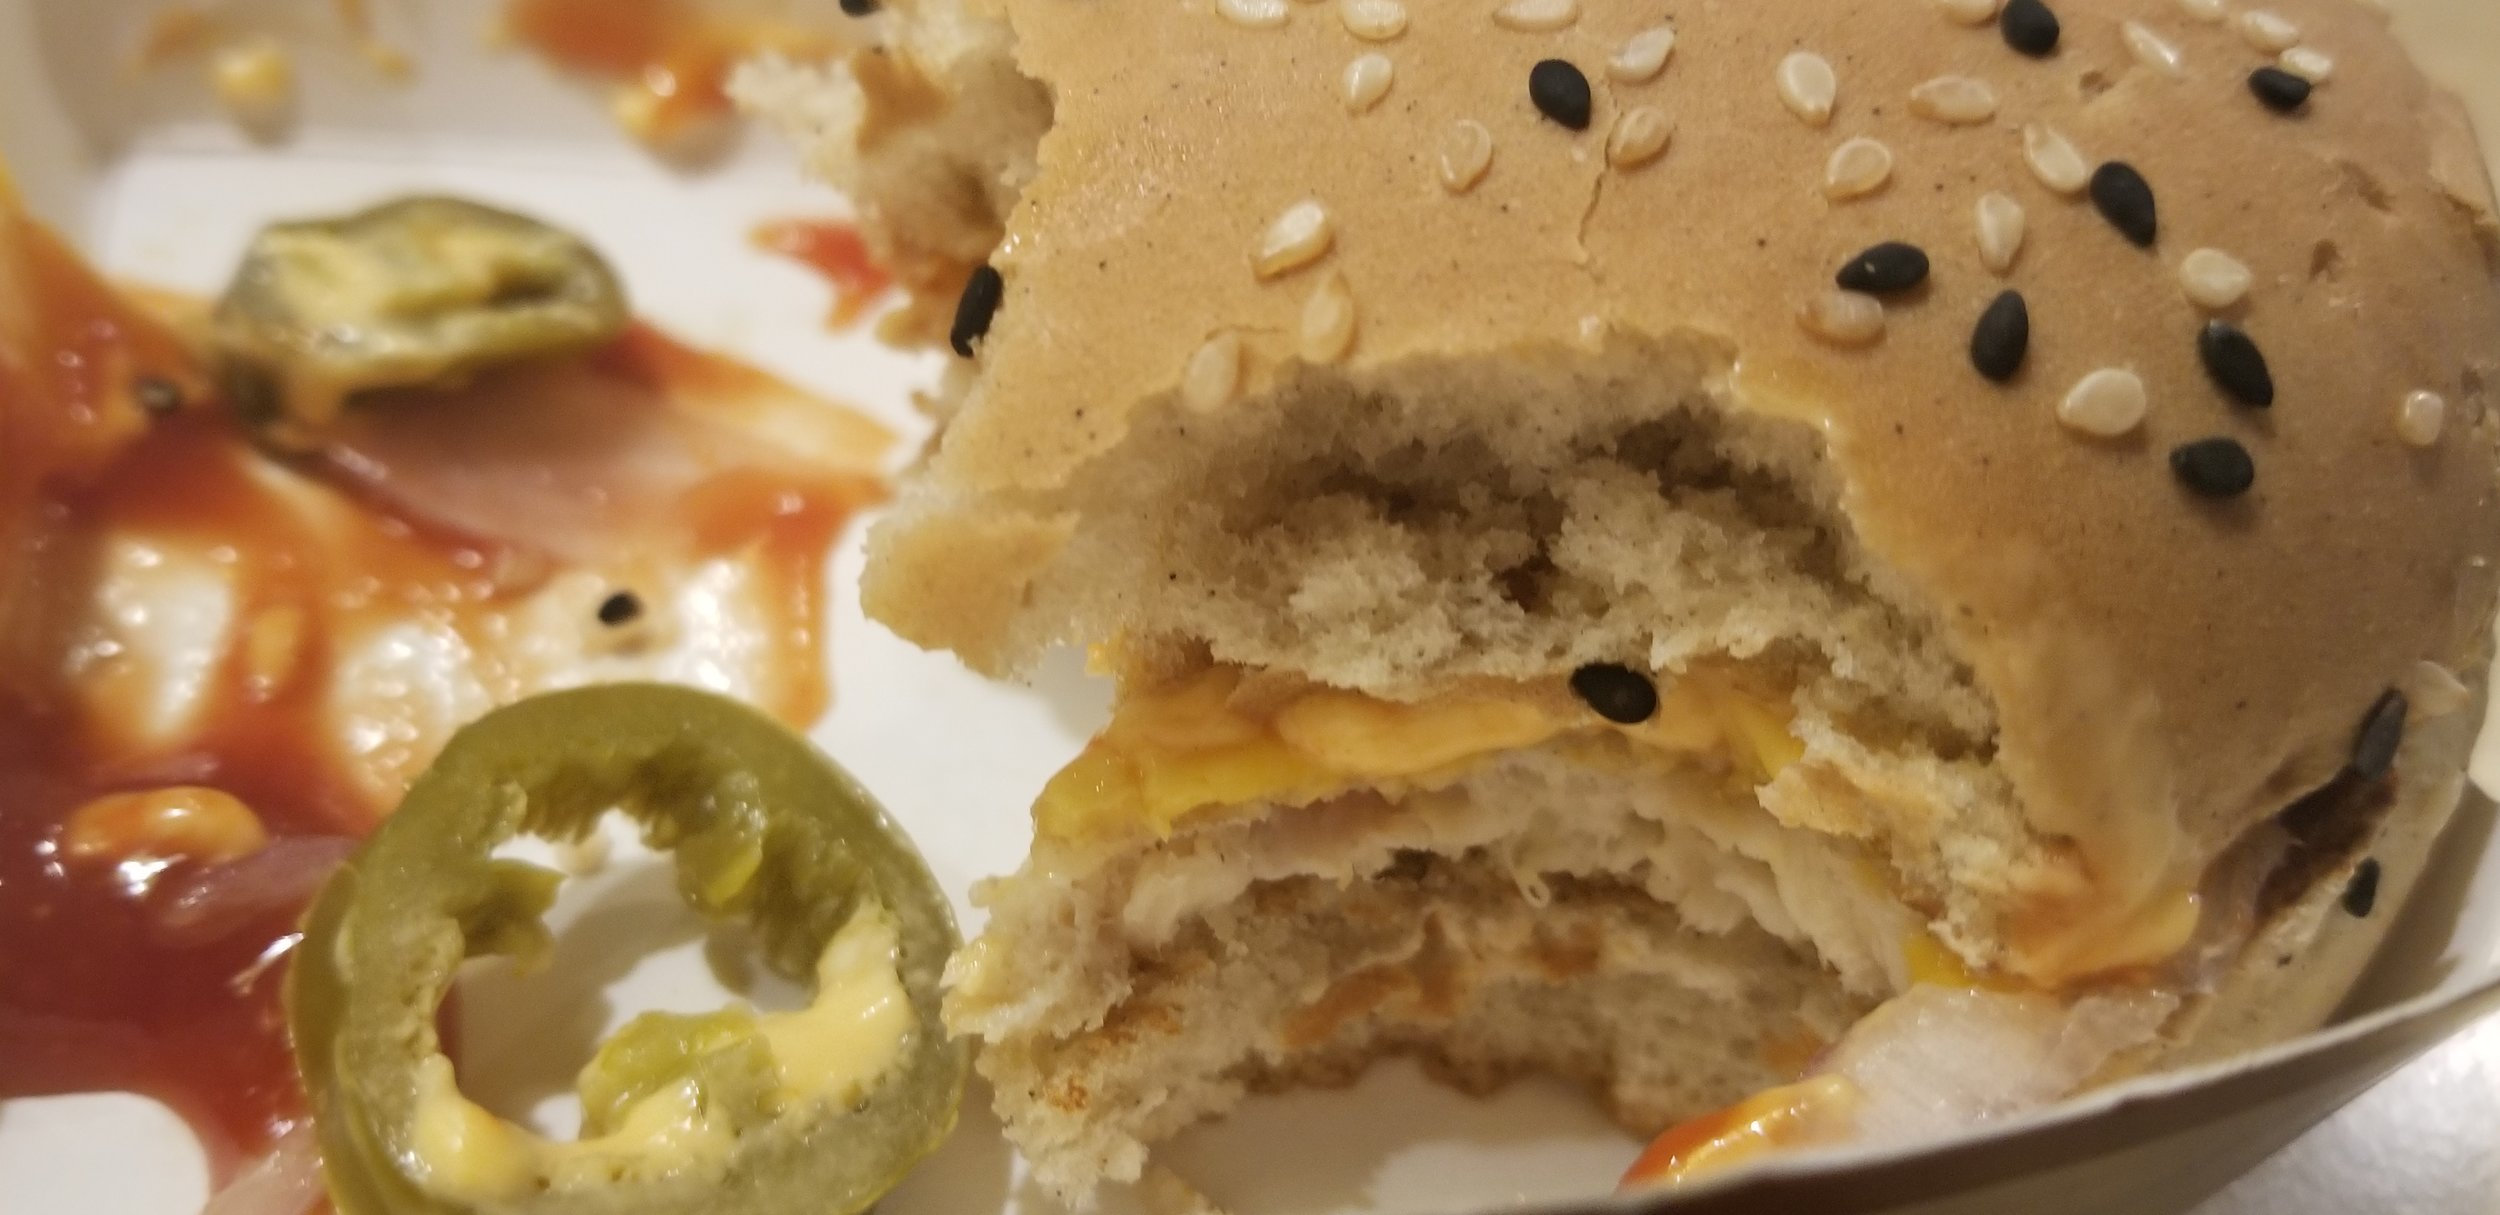 McDonalds All American burger was spicy.